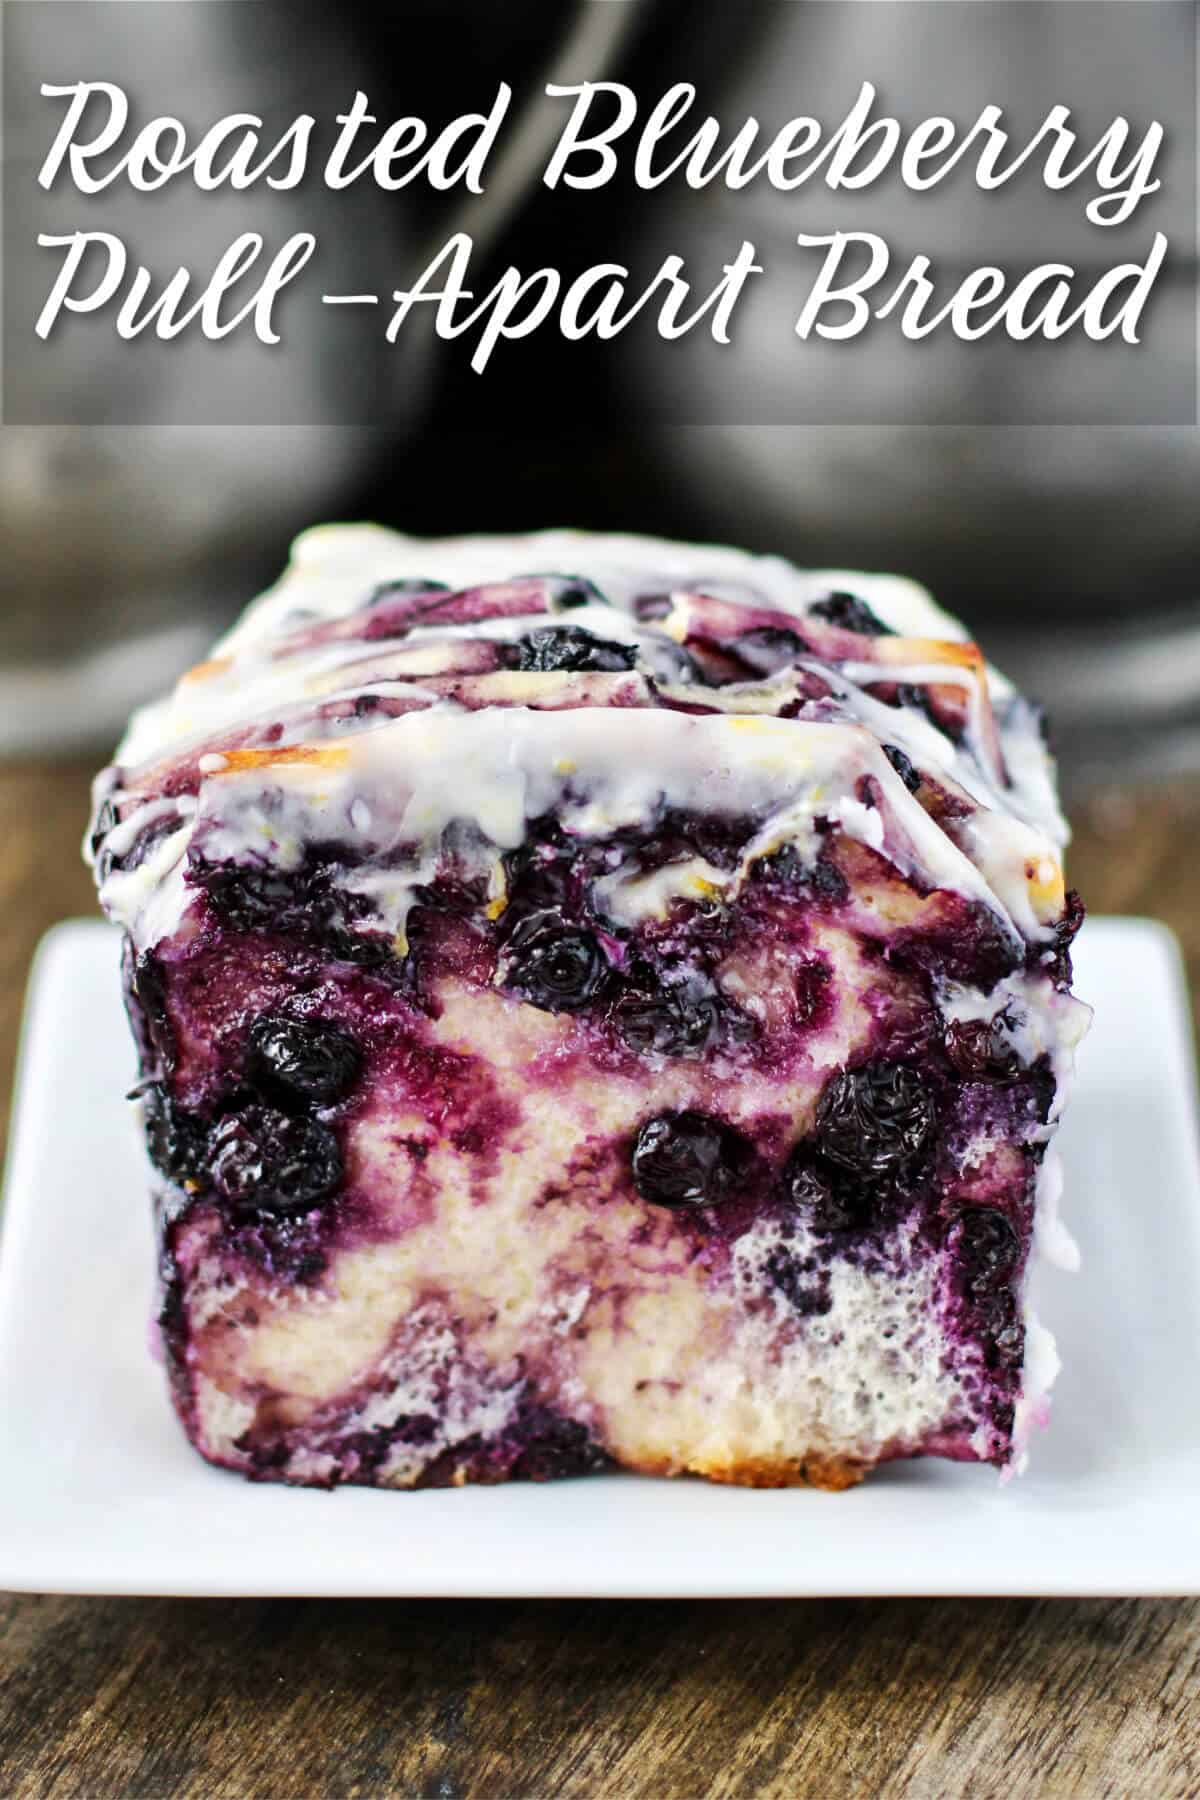 Roasted Blueberry Pull-Apart Bread with Glaze.